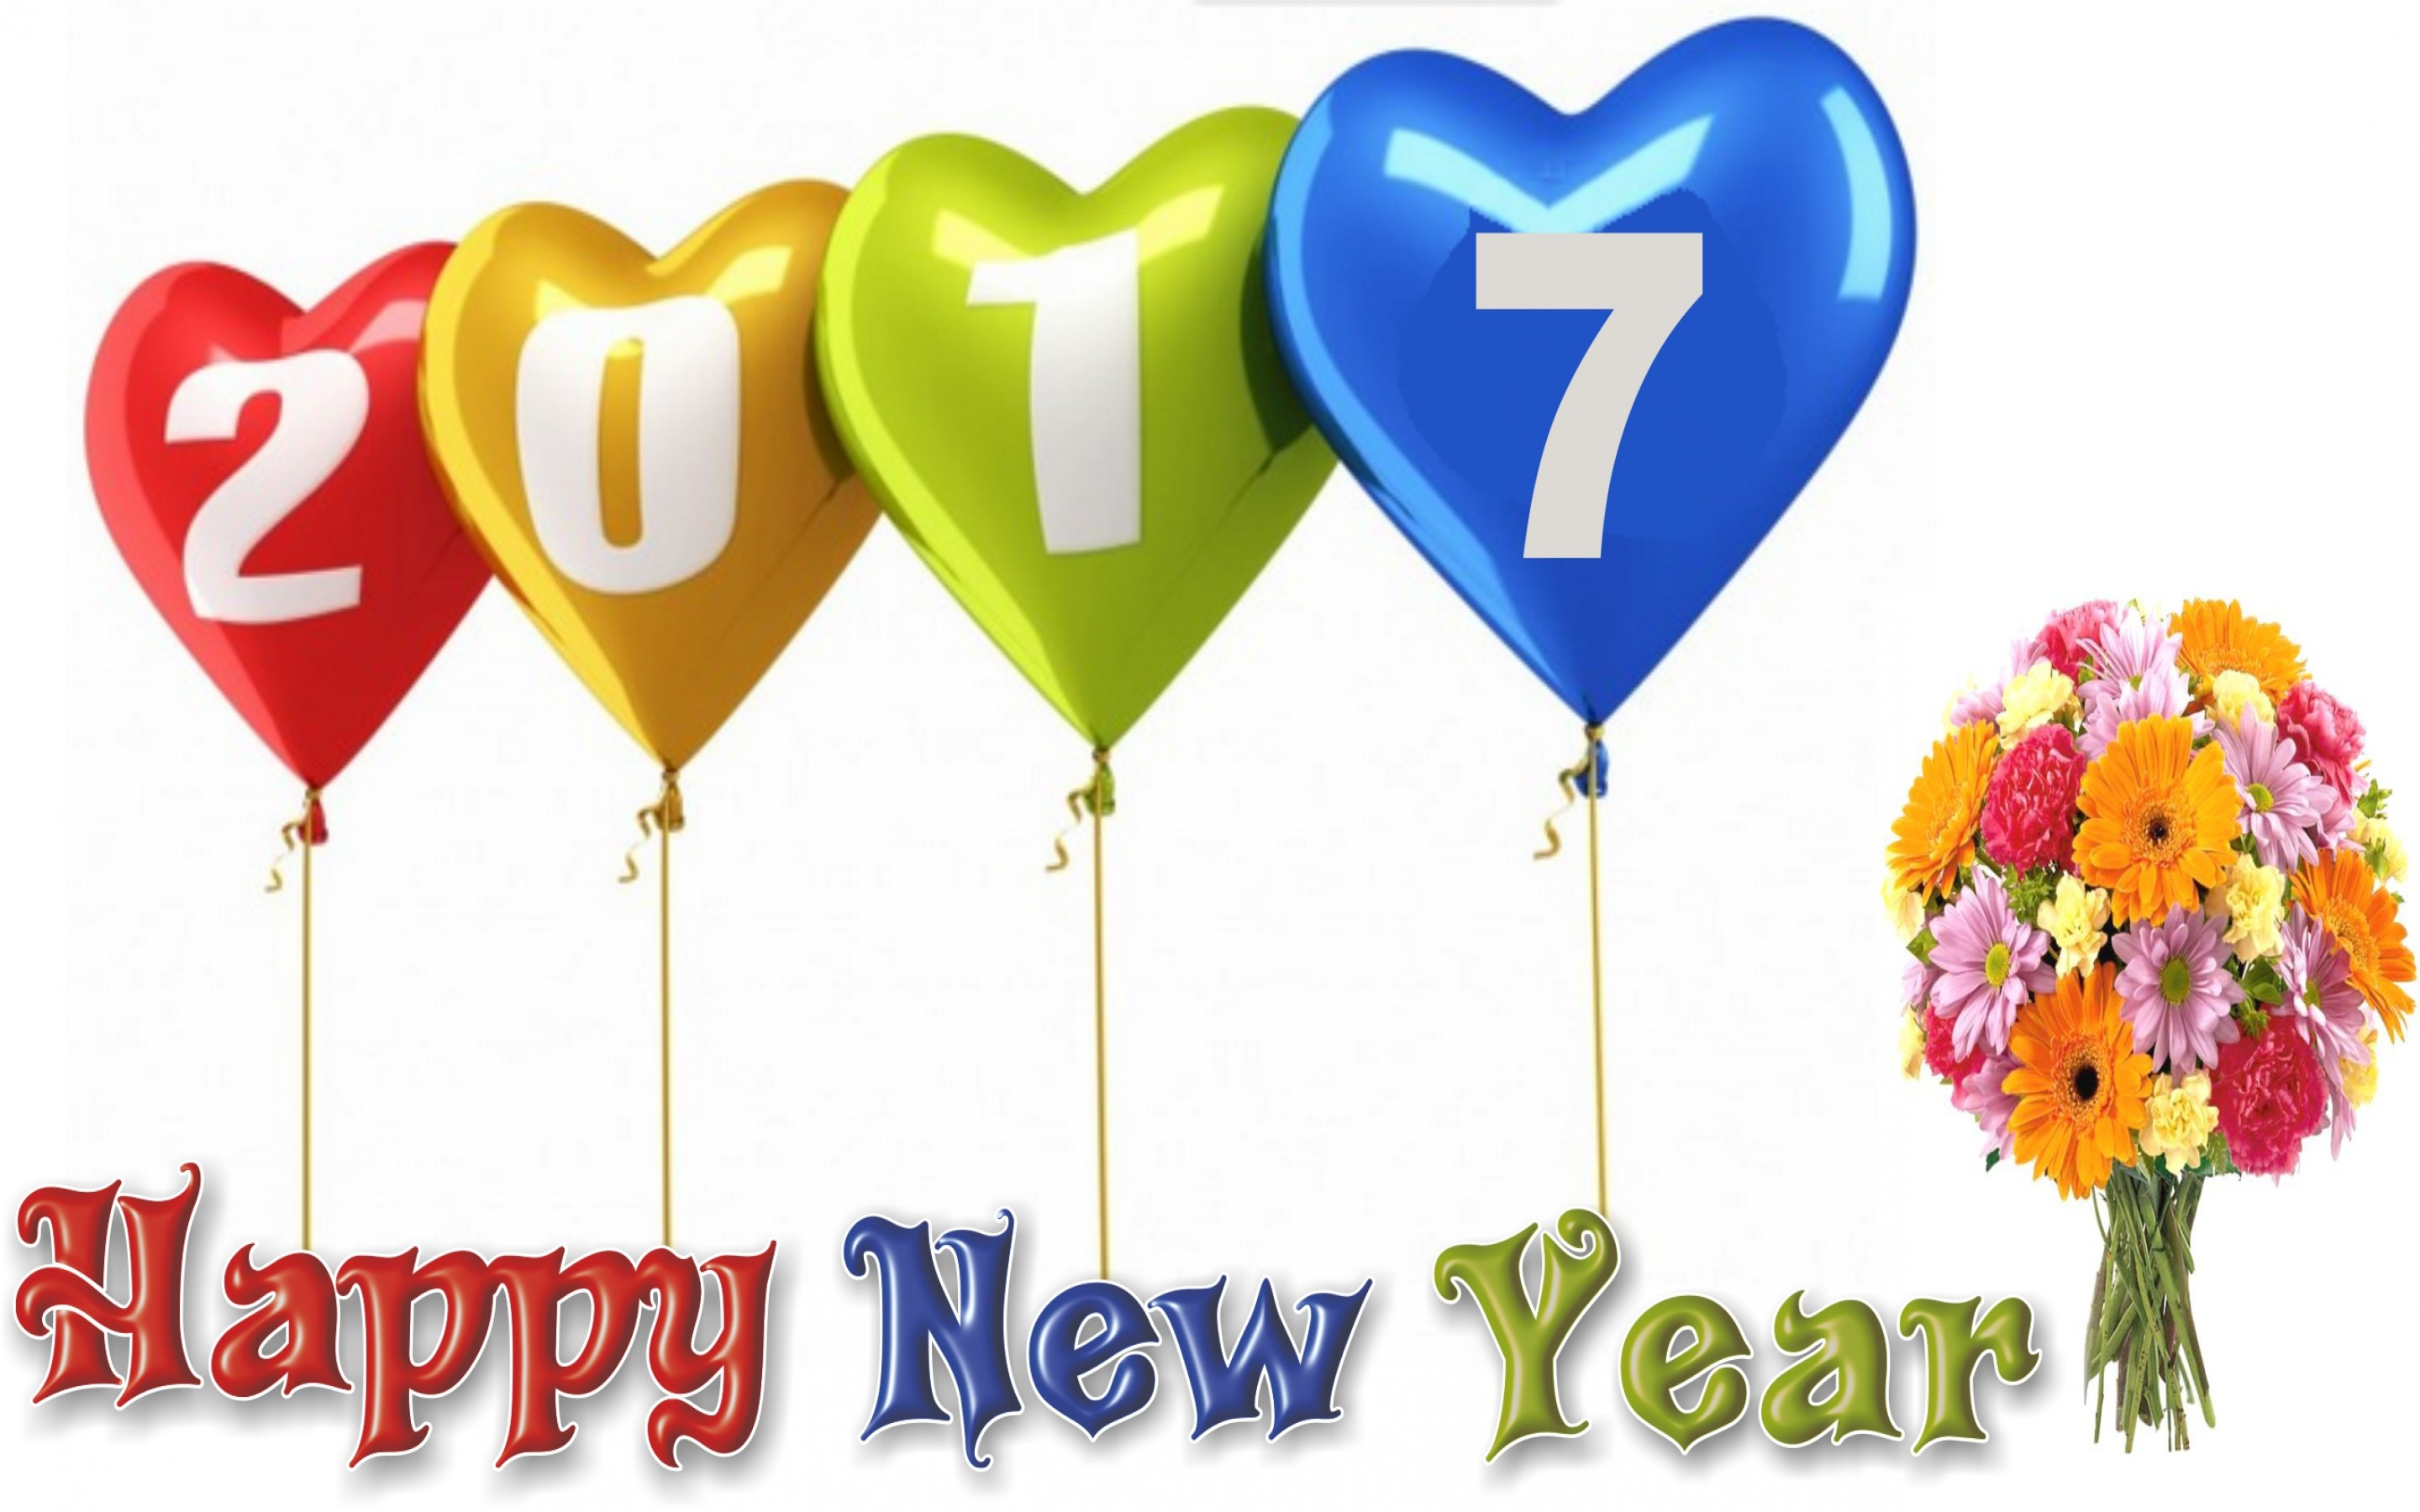 Wallpaper download new year - Download New Year Image For Whatsapp Dp Profile Pic